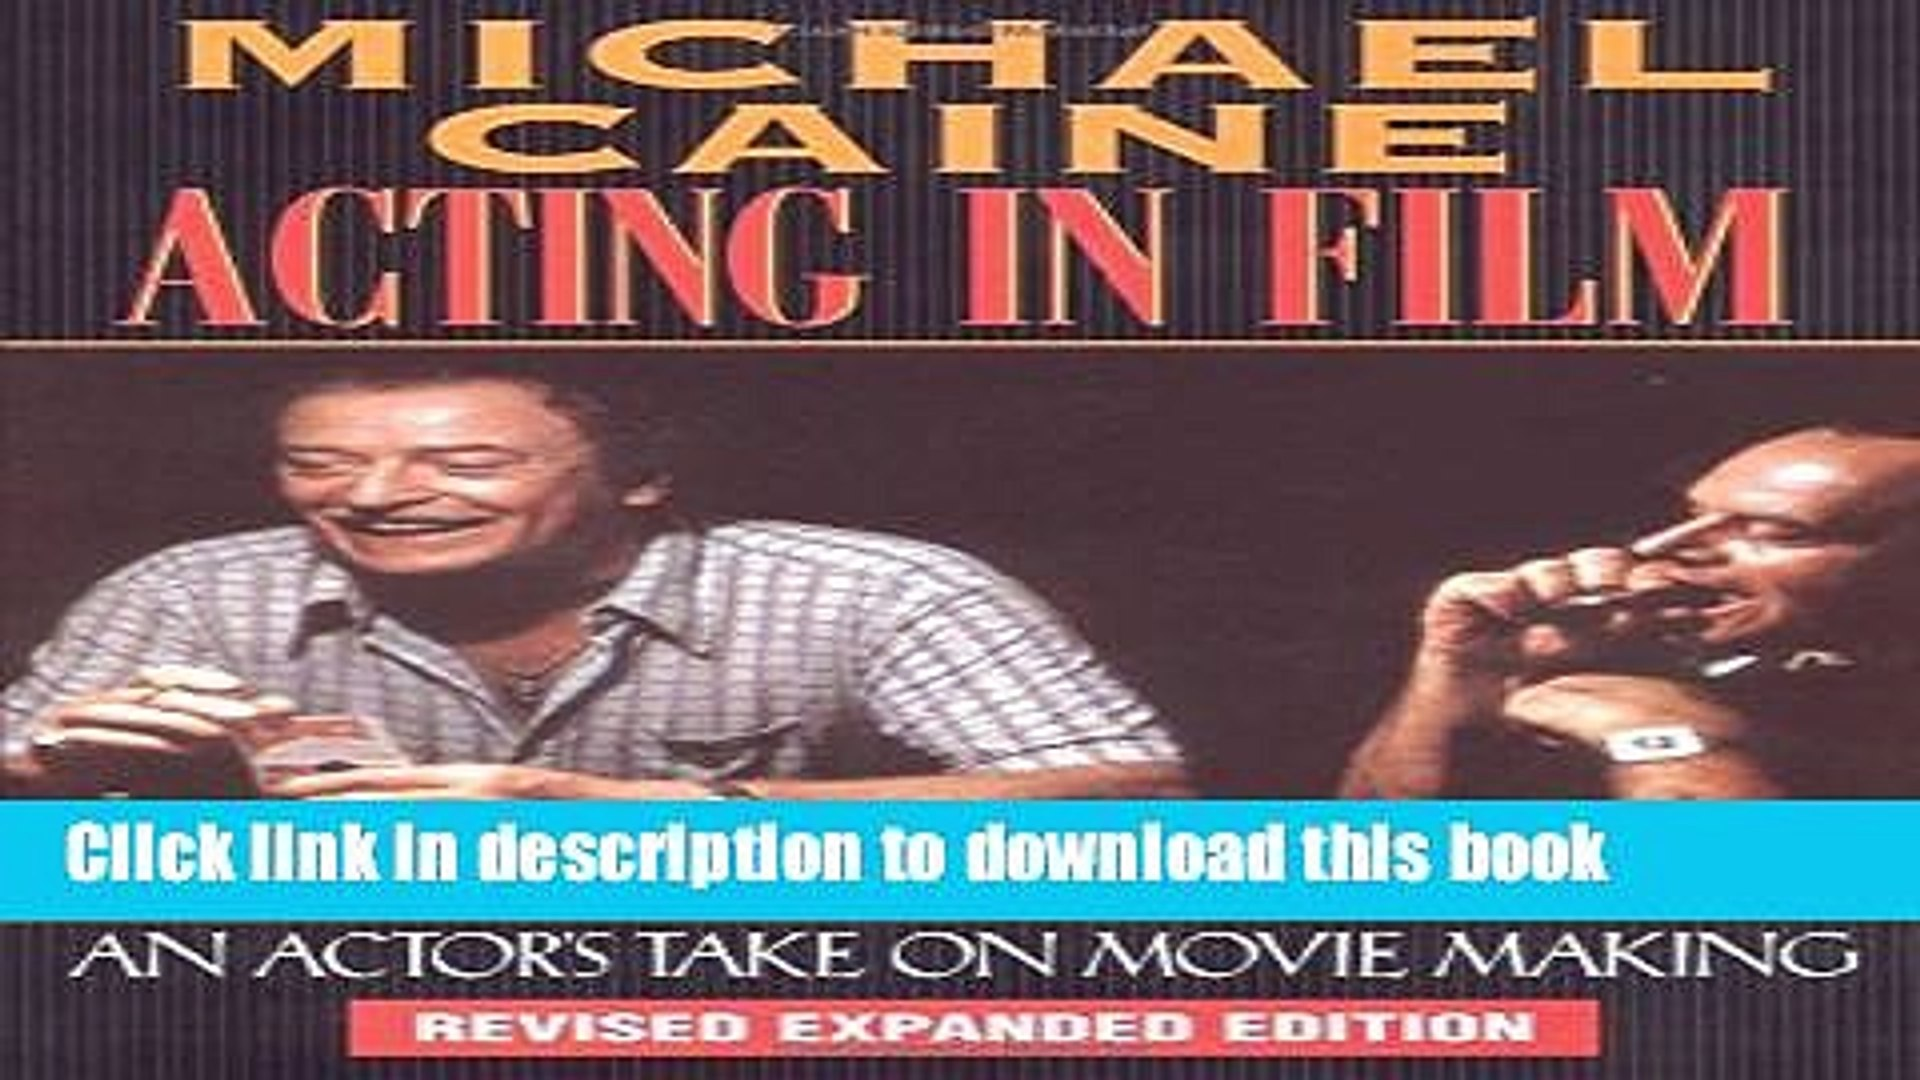 Read Michael Caine - Acting in Film: An Actor s Take on Movie Making (The Applause Acting Series)